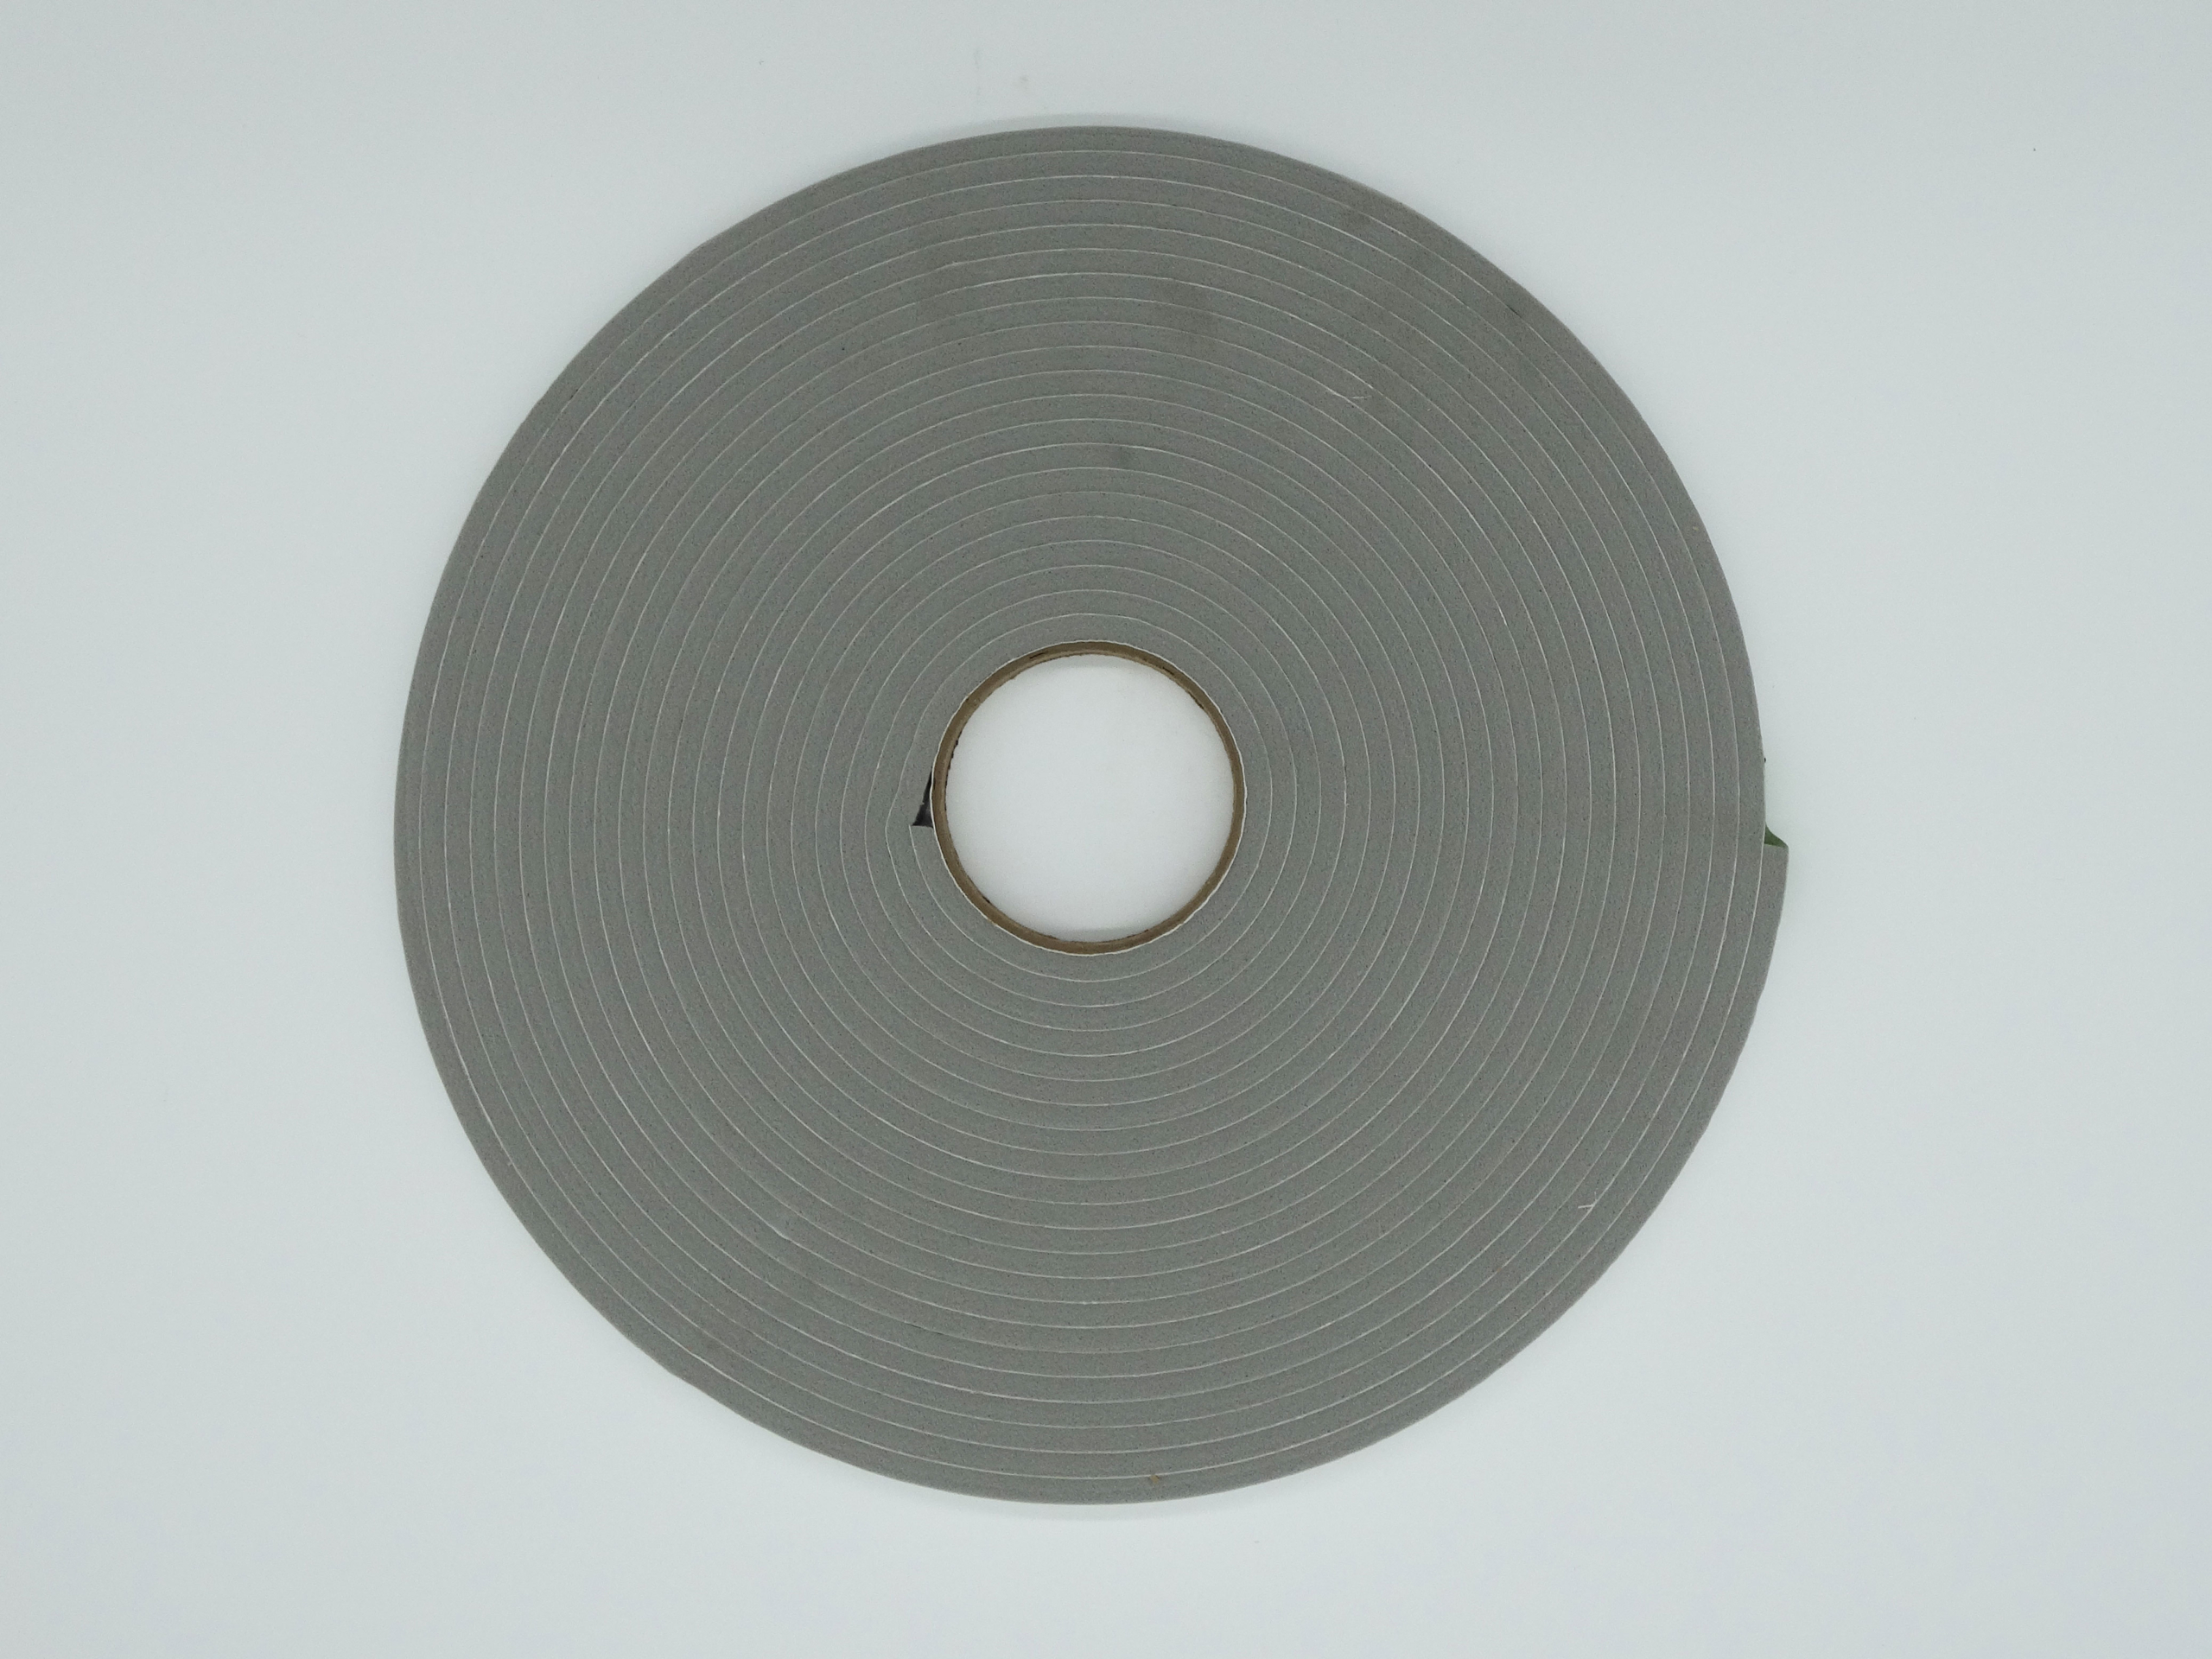 Sealing Tape: Foam sealing PVC, White – 15.2M